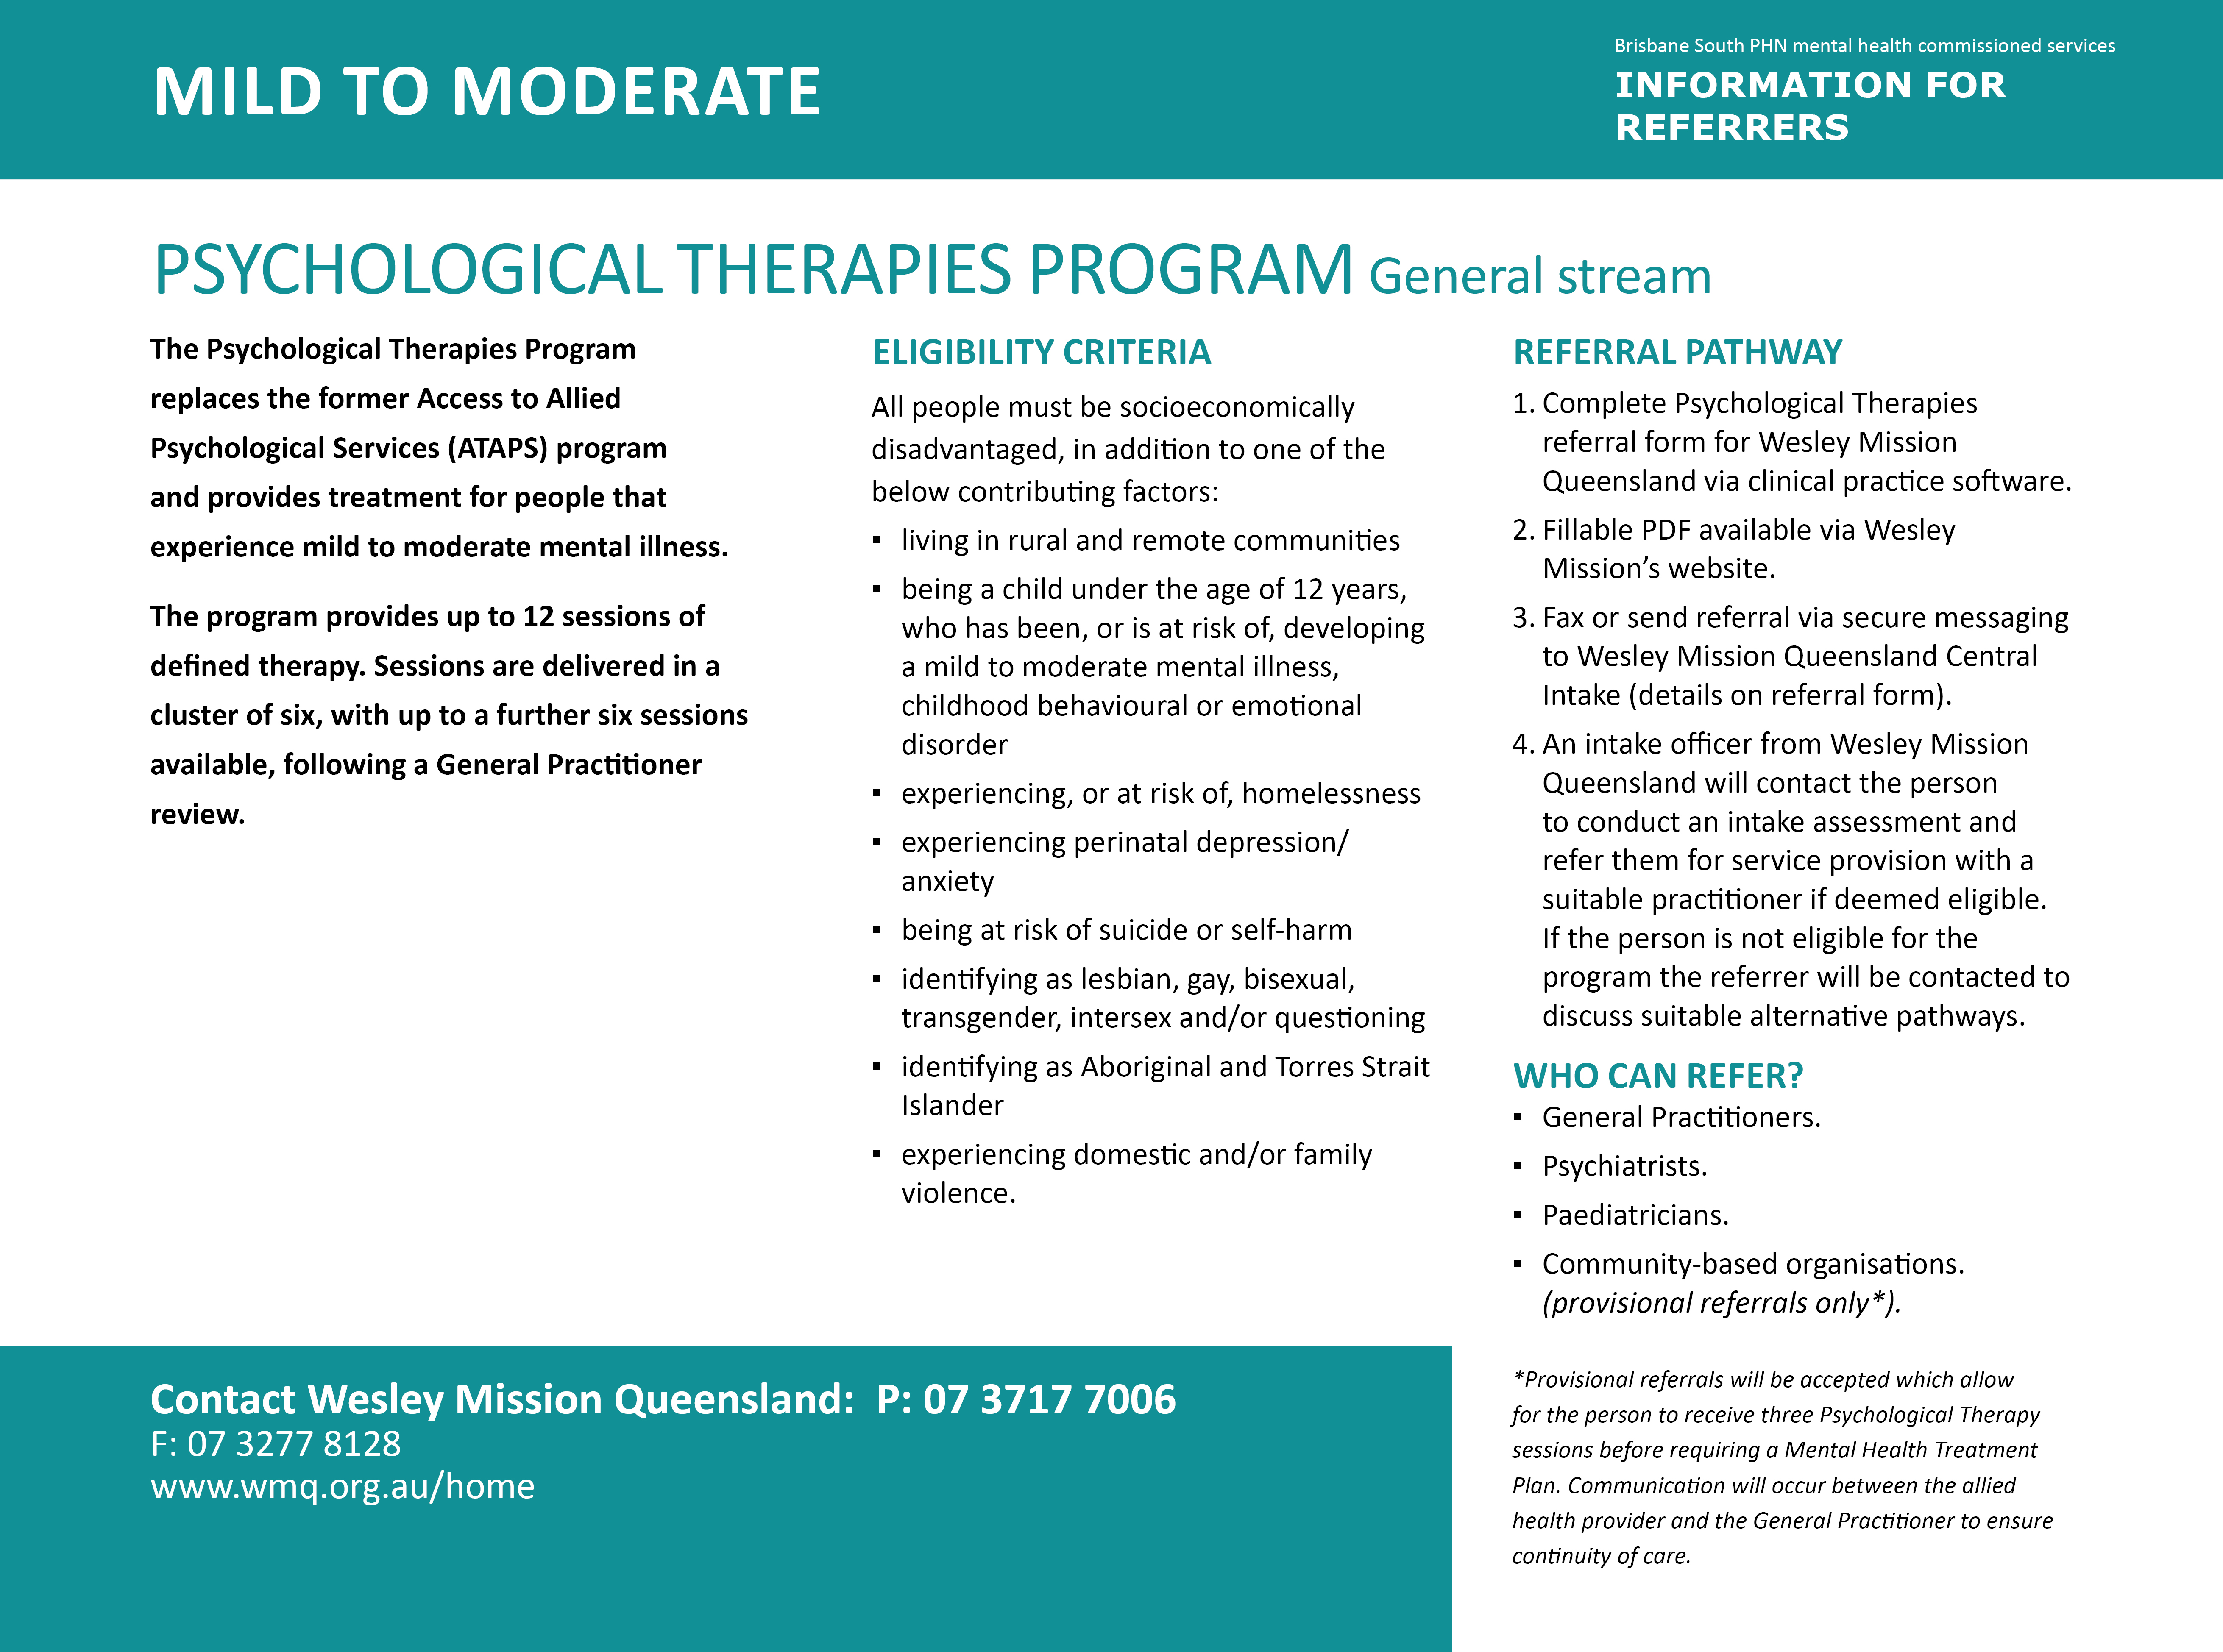 Psychological Therapies Program - General